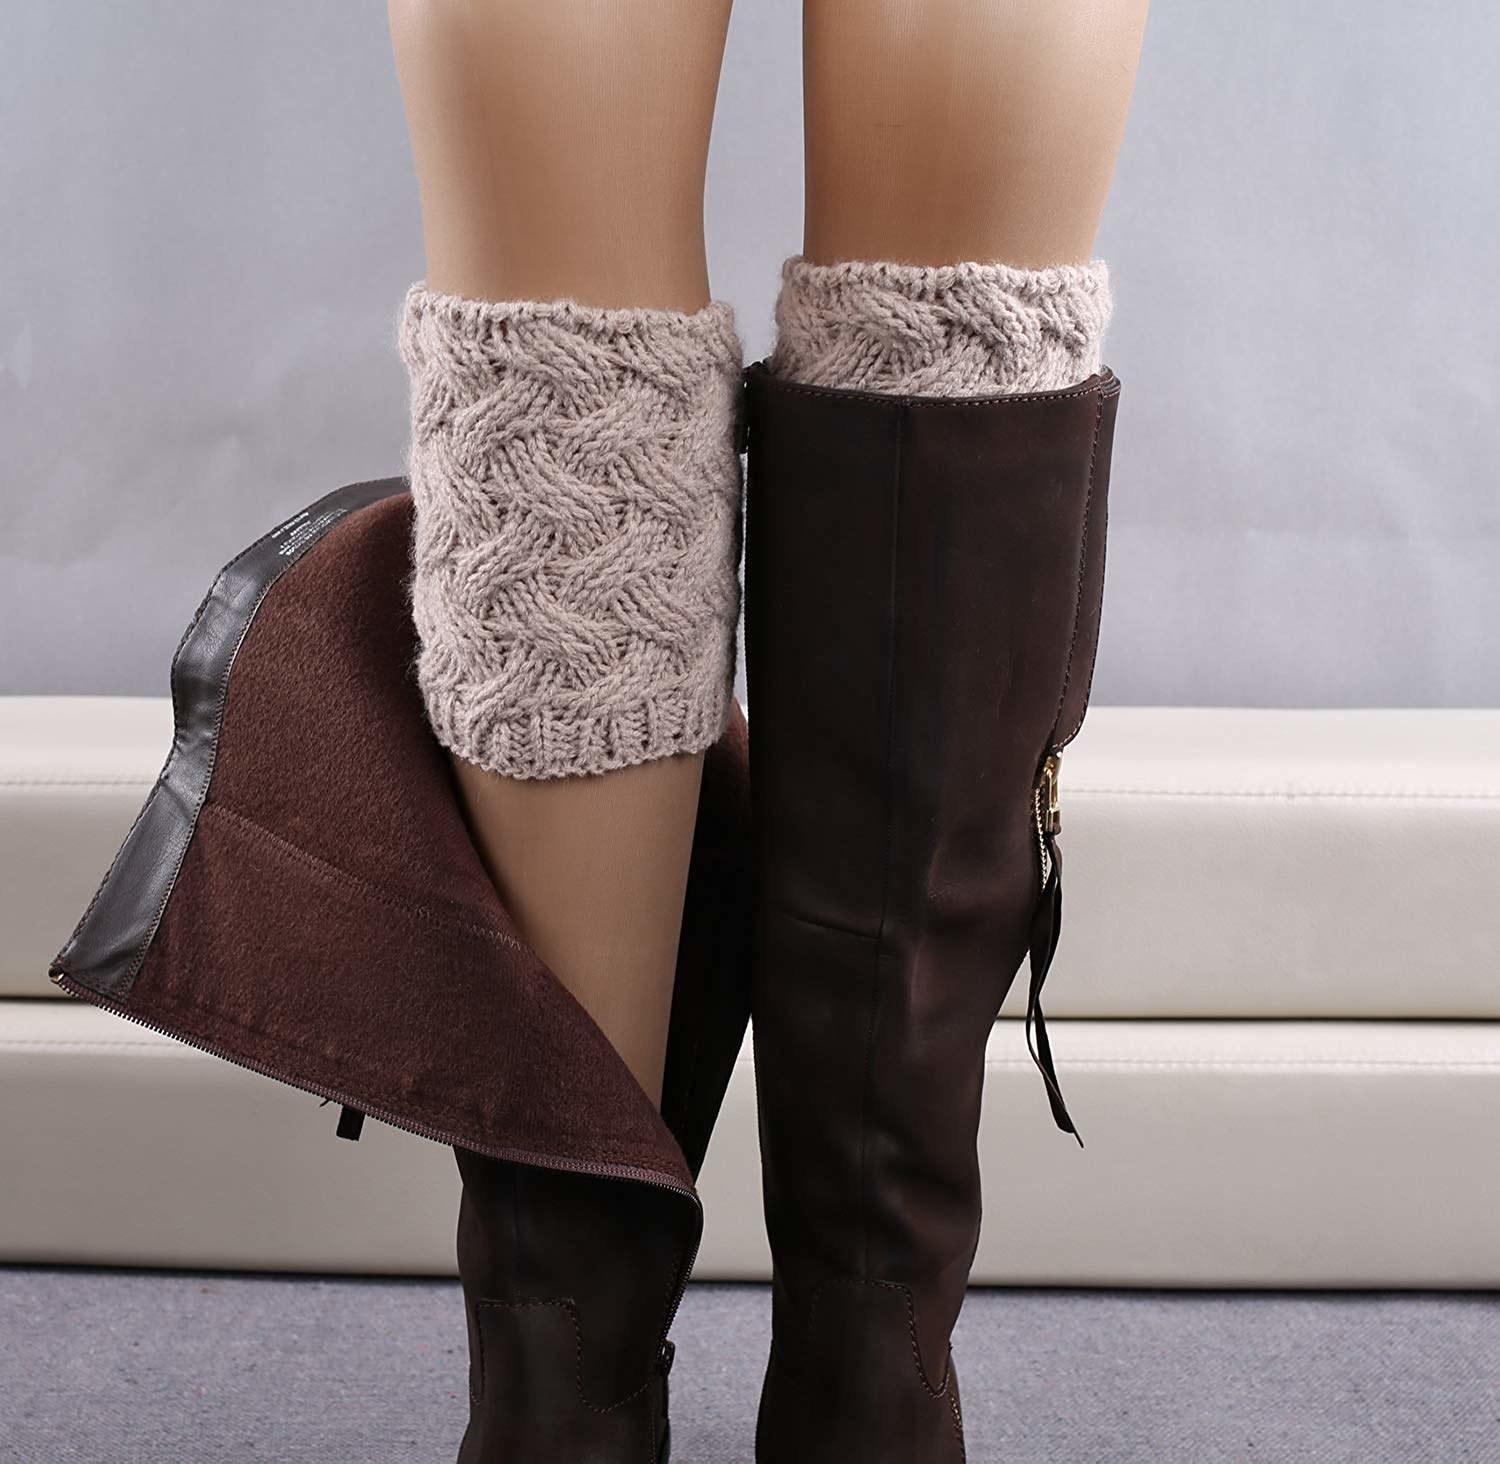 A model wearing a zipped-down boot to reveal a knit boot cuff